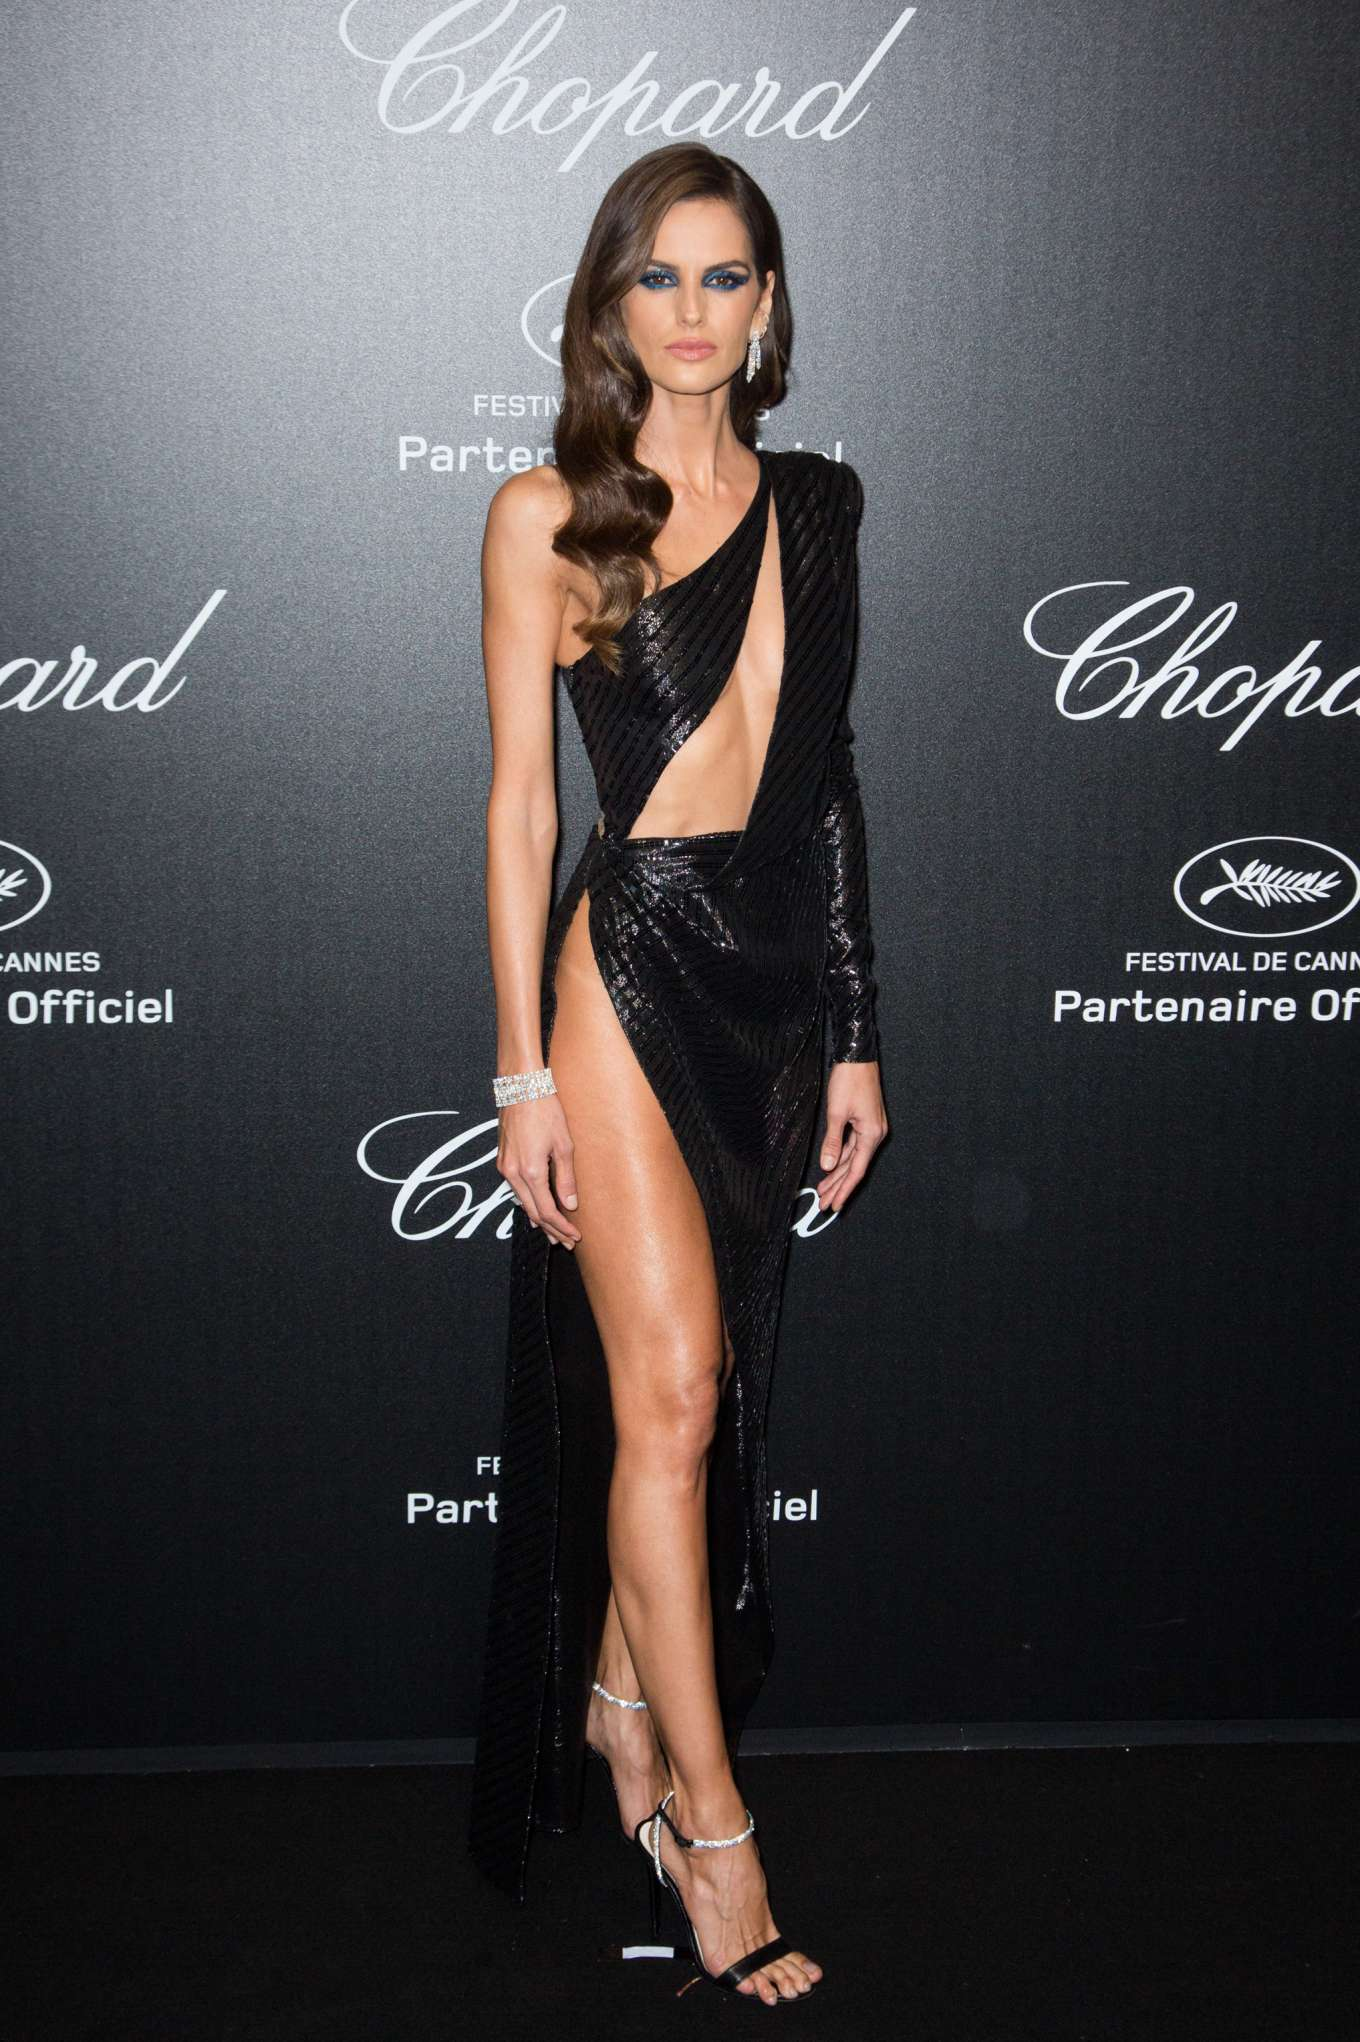 Izabel Goulart - Chopard Party at 2019 Cannes Film Festival